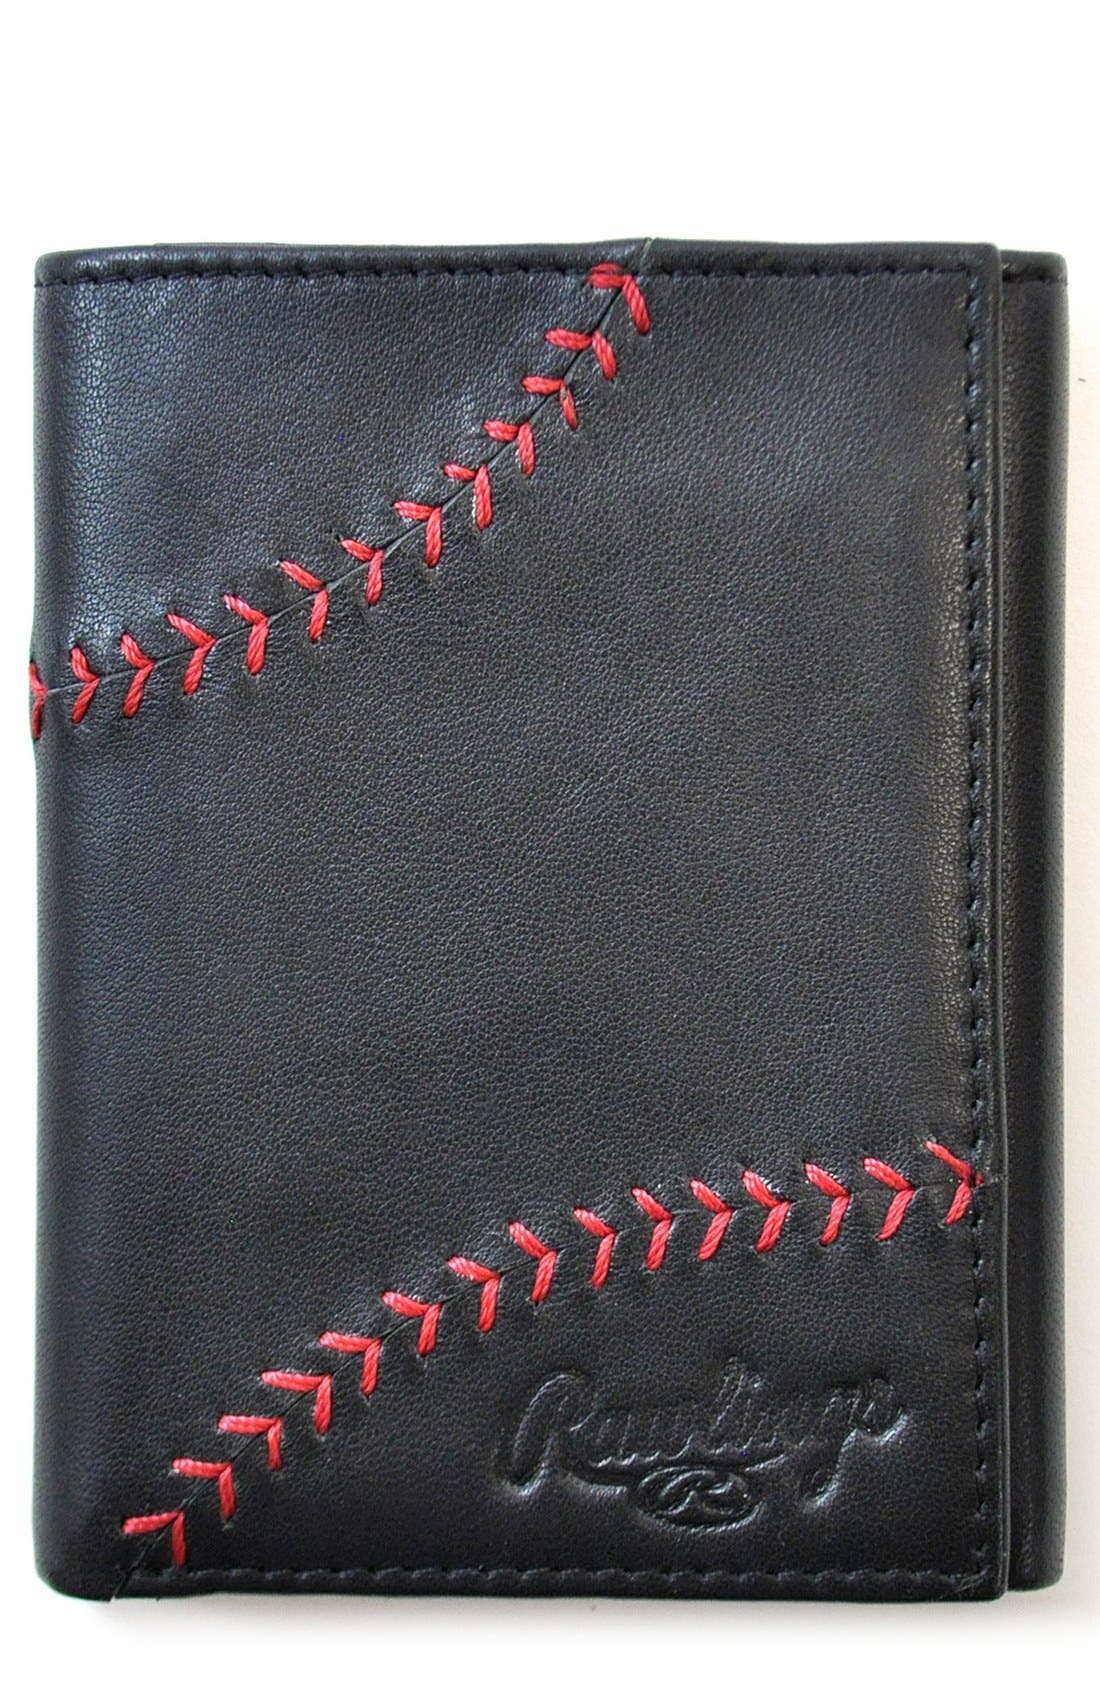 Baseball Stitch Leather Trifold Wallet,                             Main thumbnail 1, color,                             001